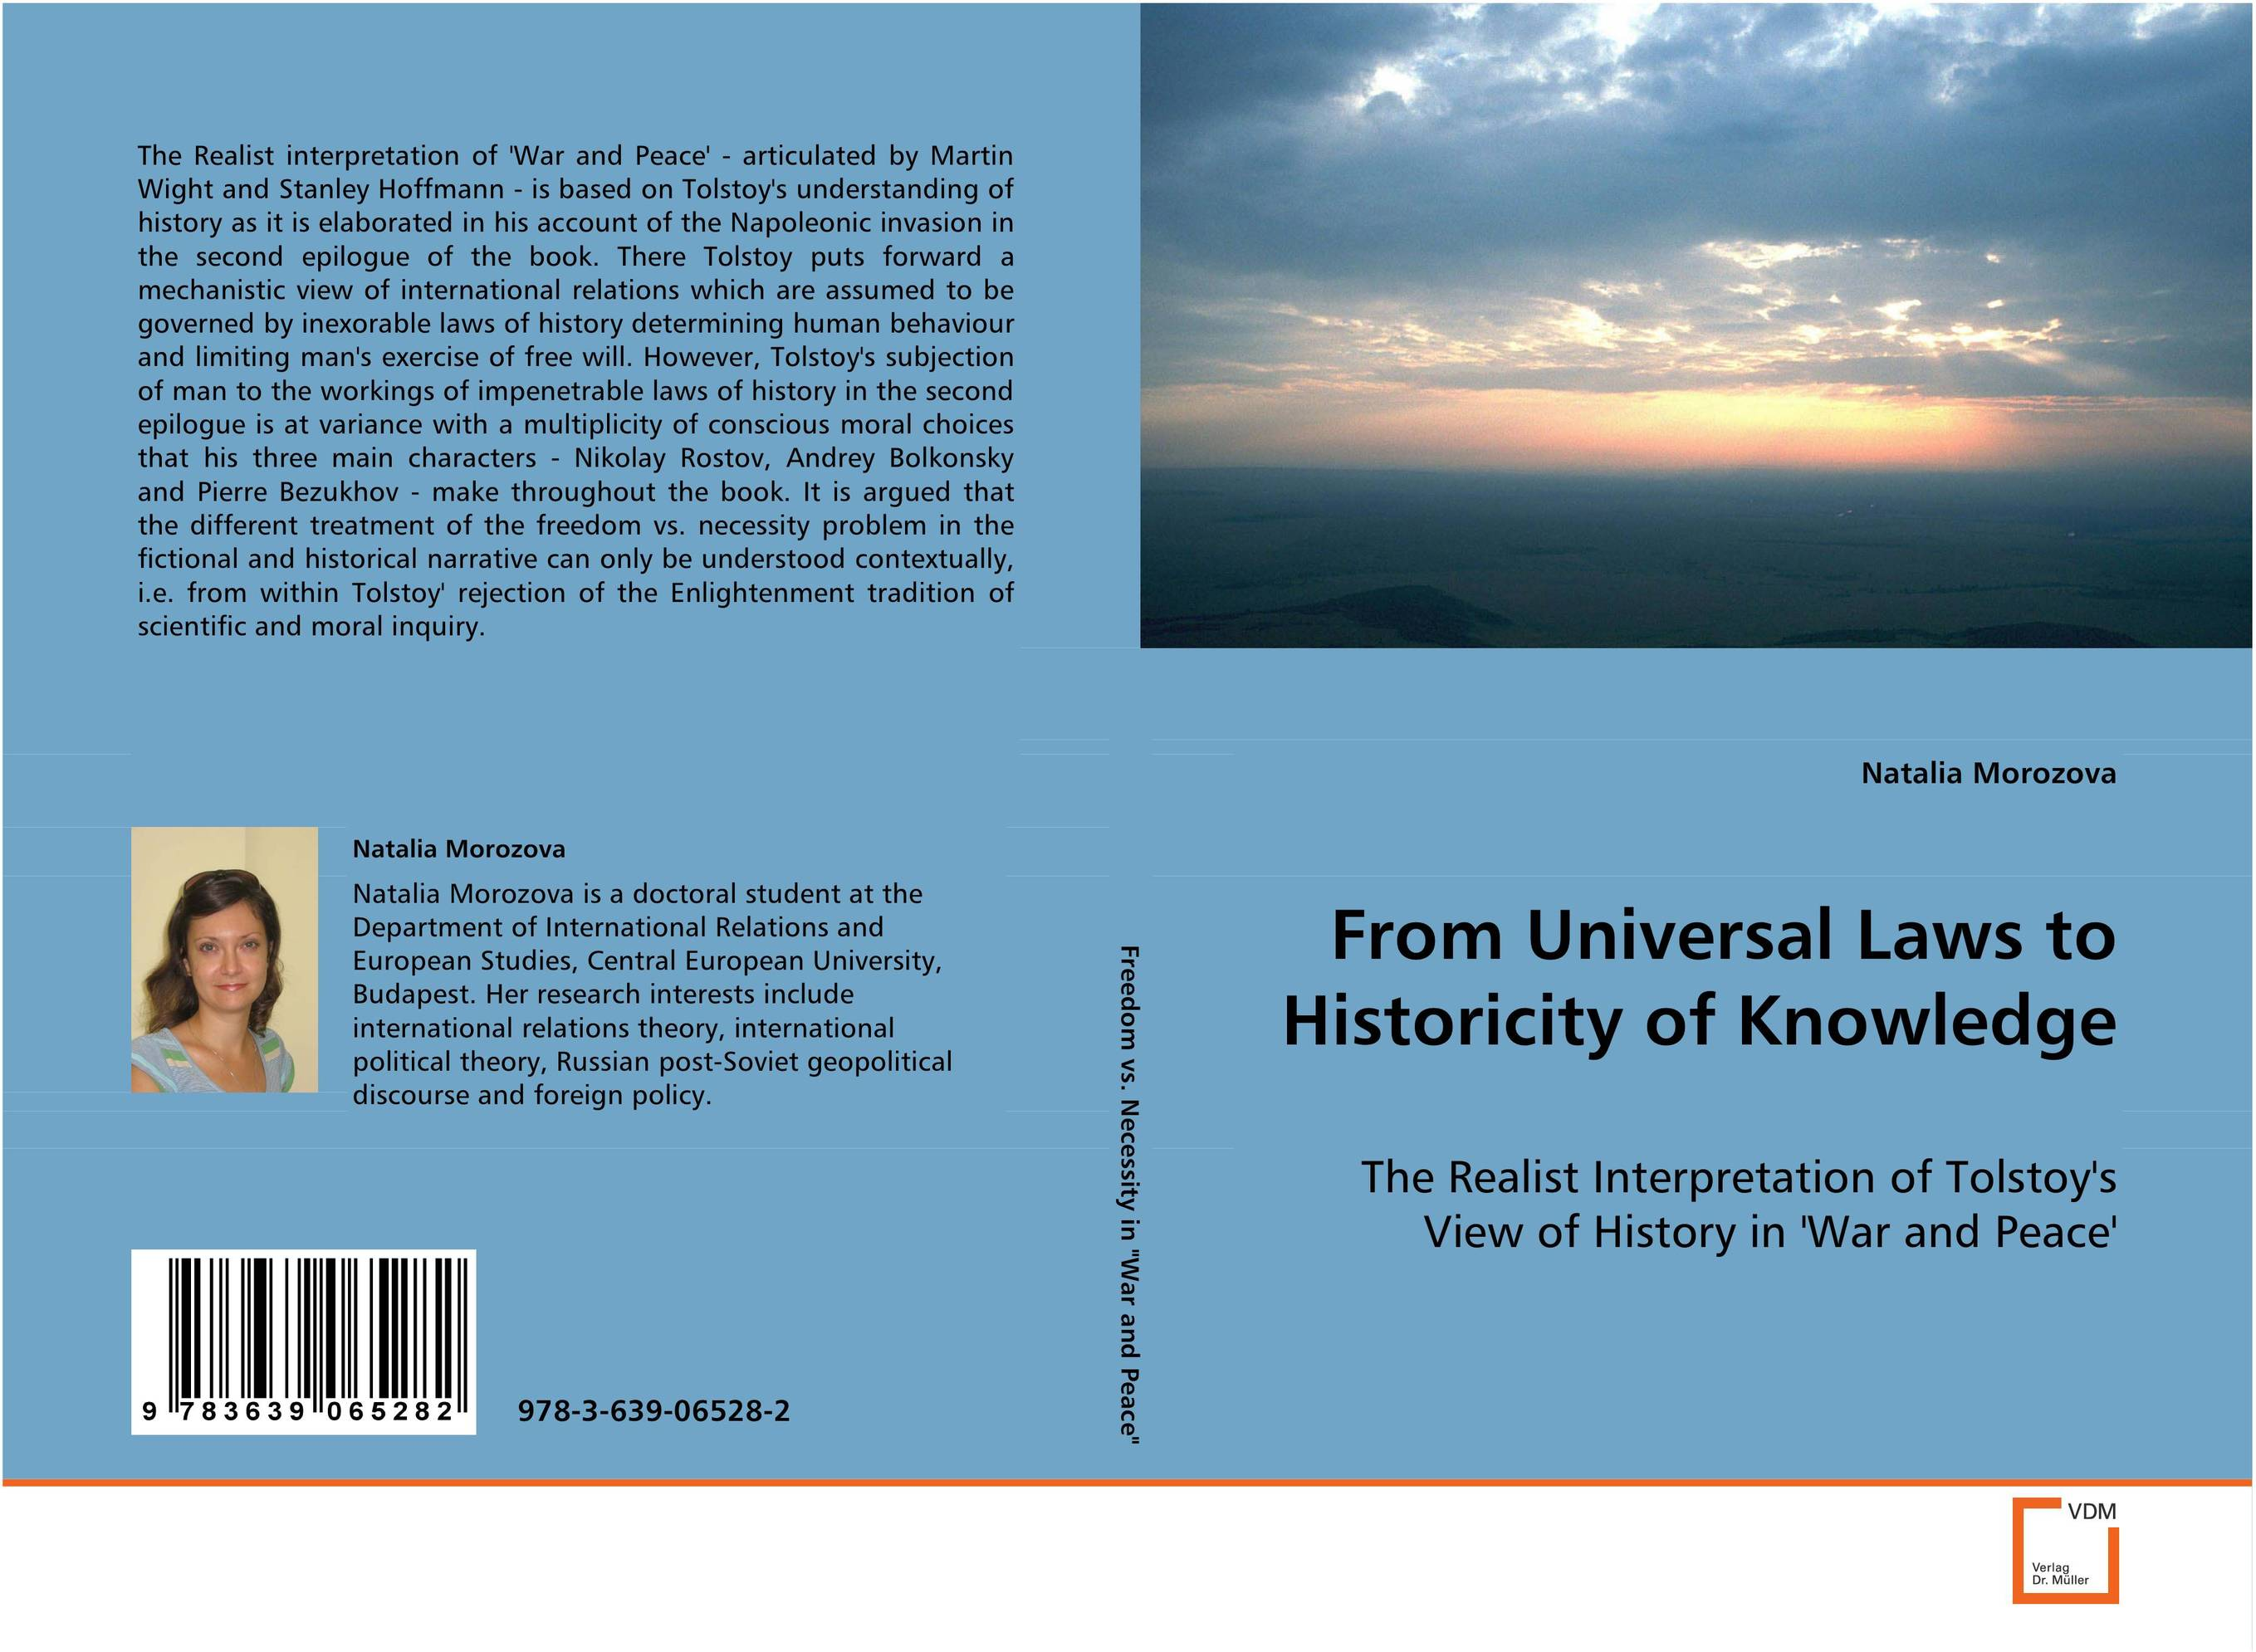 From Universal Laws to Historicity of Knowledge elena fishtik sara laws are keeping silence during the war